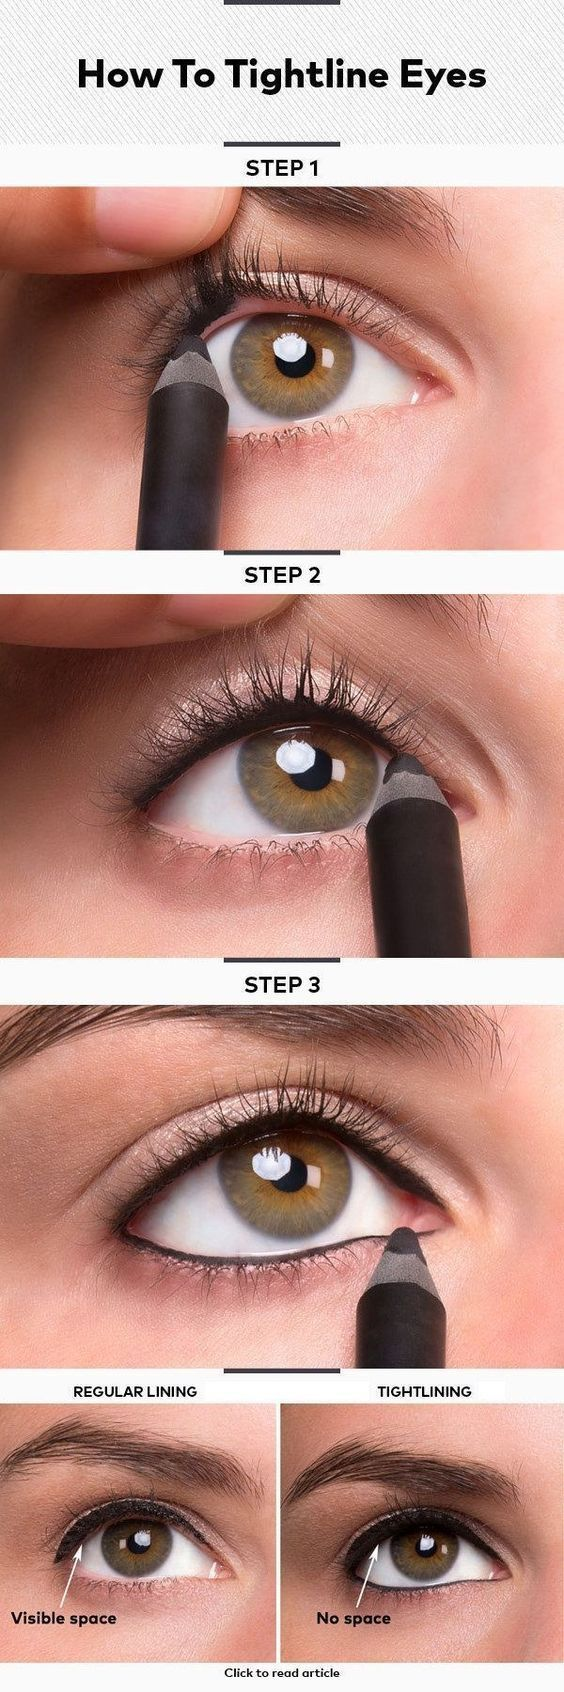 How to Tightline Eyes. Tightlining means applying liner to the top and bottom waterlines for a clean look that makes your eyes pop